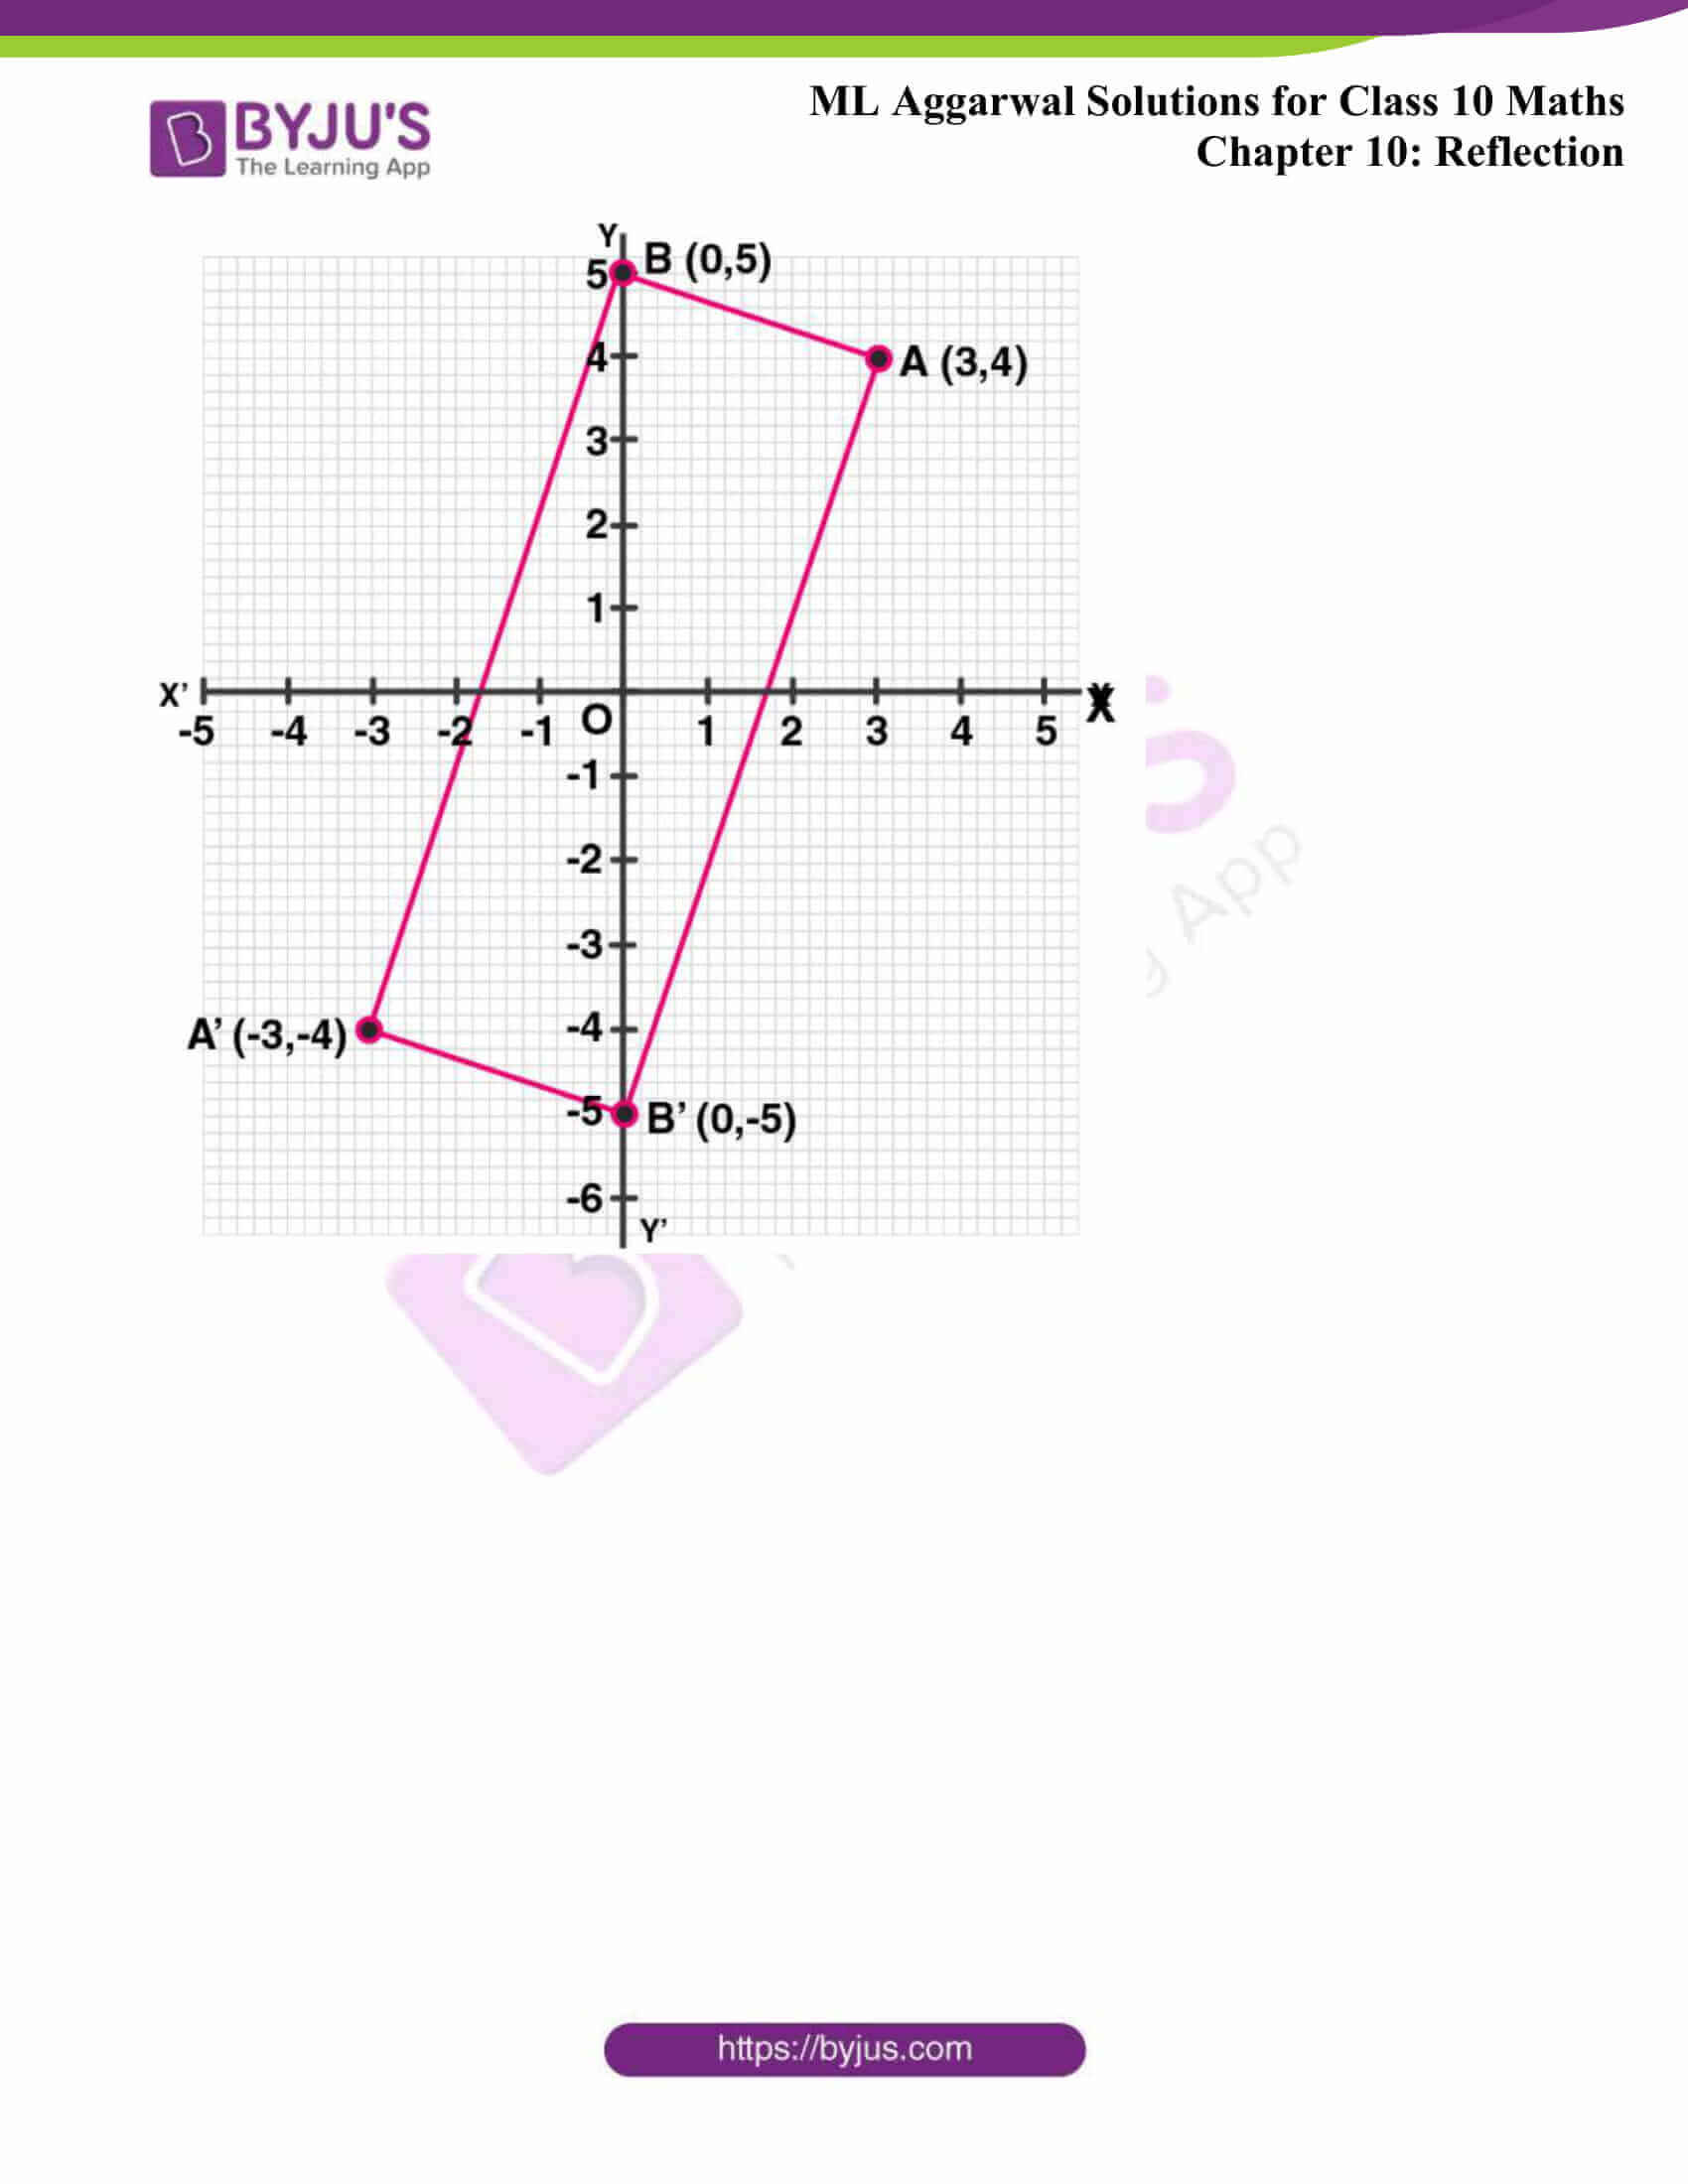 ml aggarwal solutions class 10 maths chapter 10 26